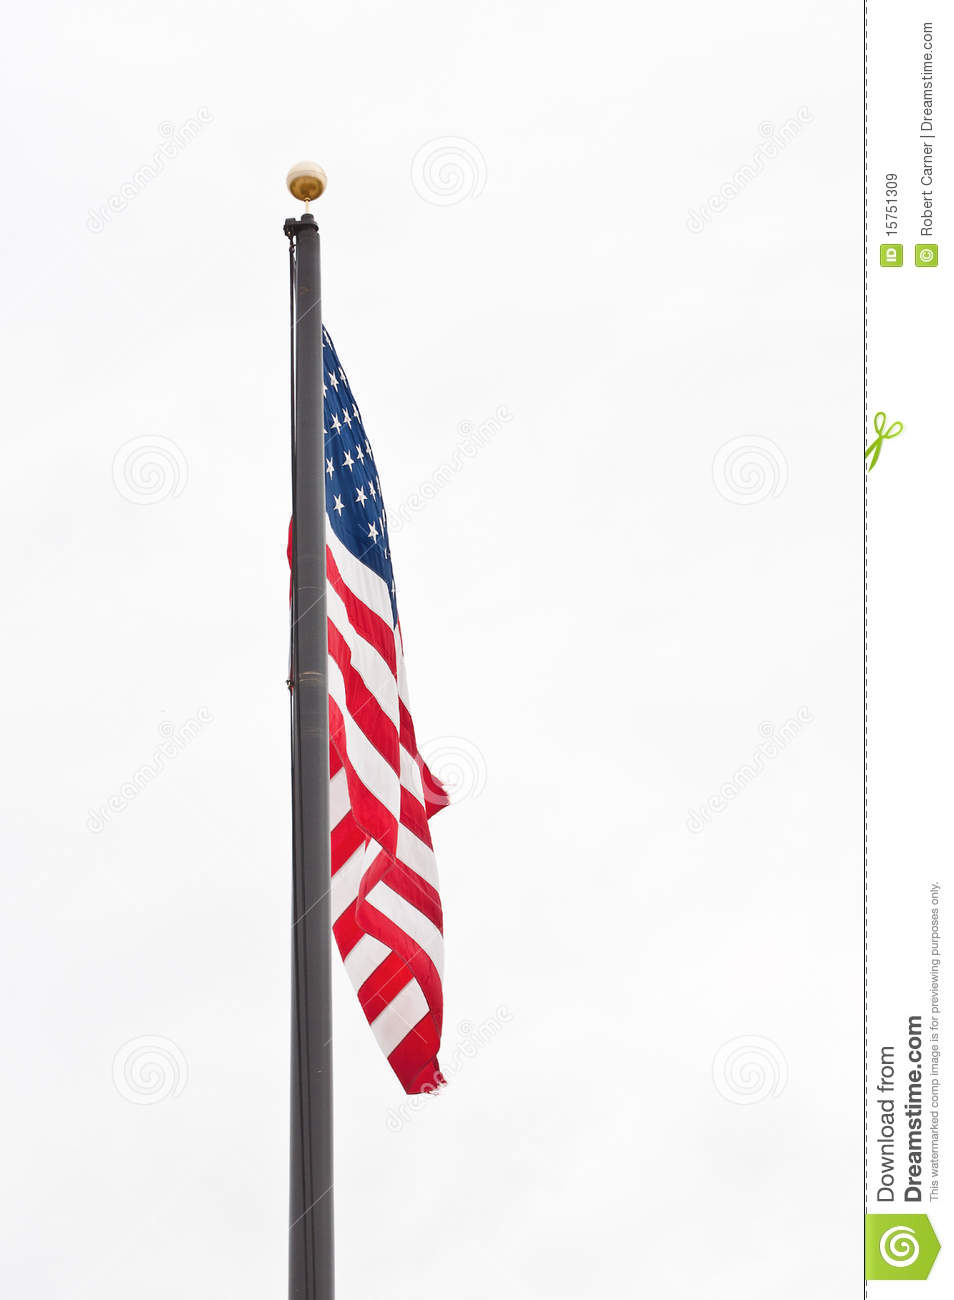 2020 Other | Images: Flag Pole Vector